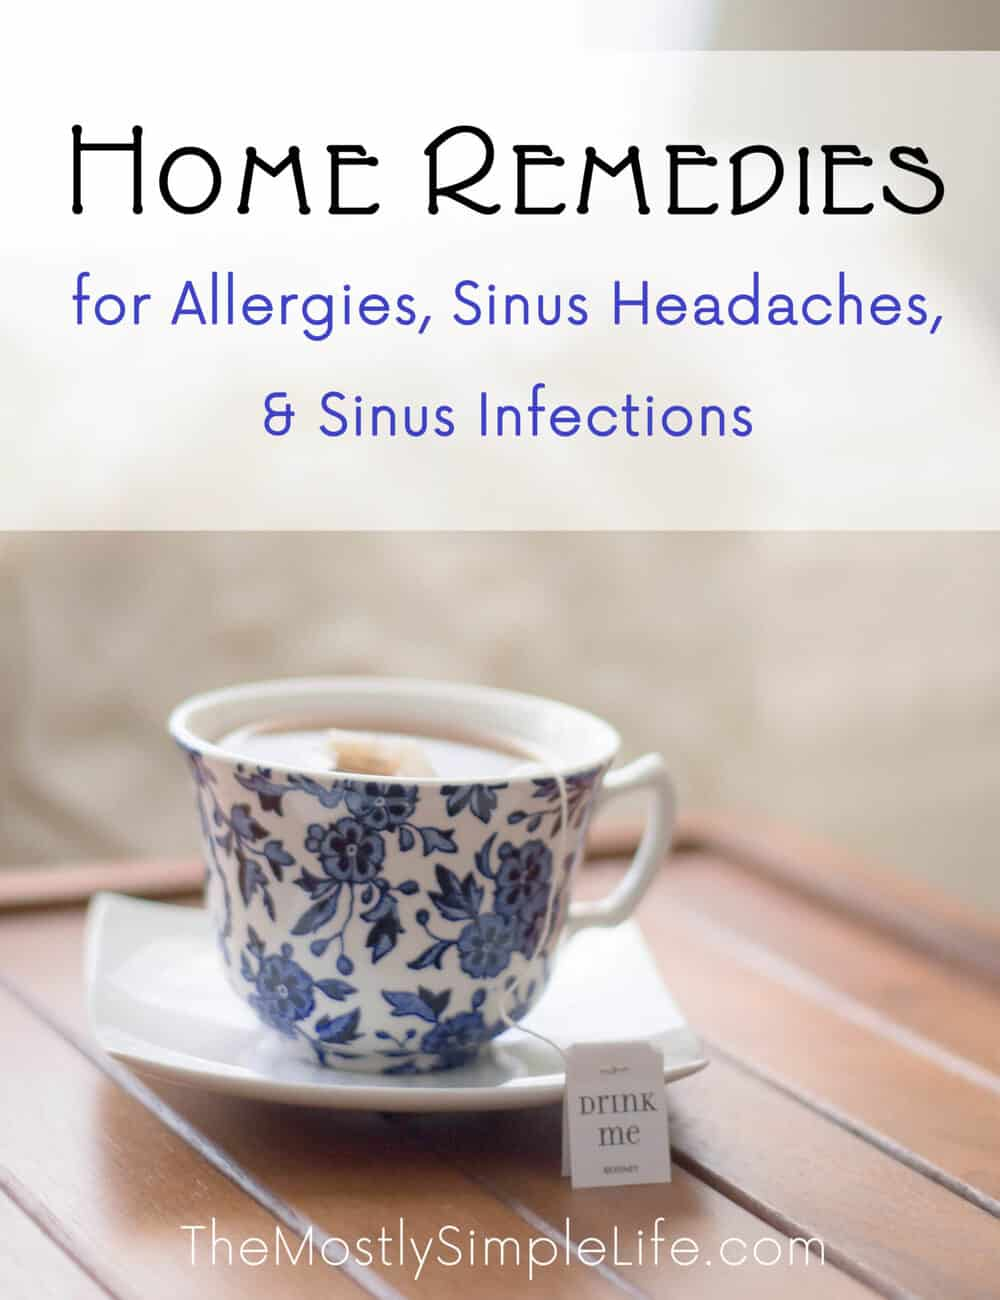 Home remedies to try for allergies, sinus headaches, and sinus infections.